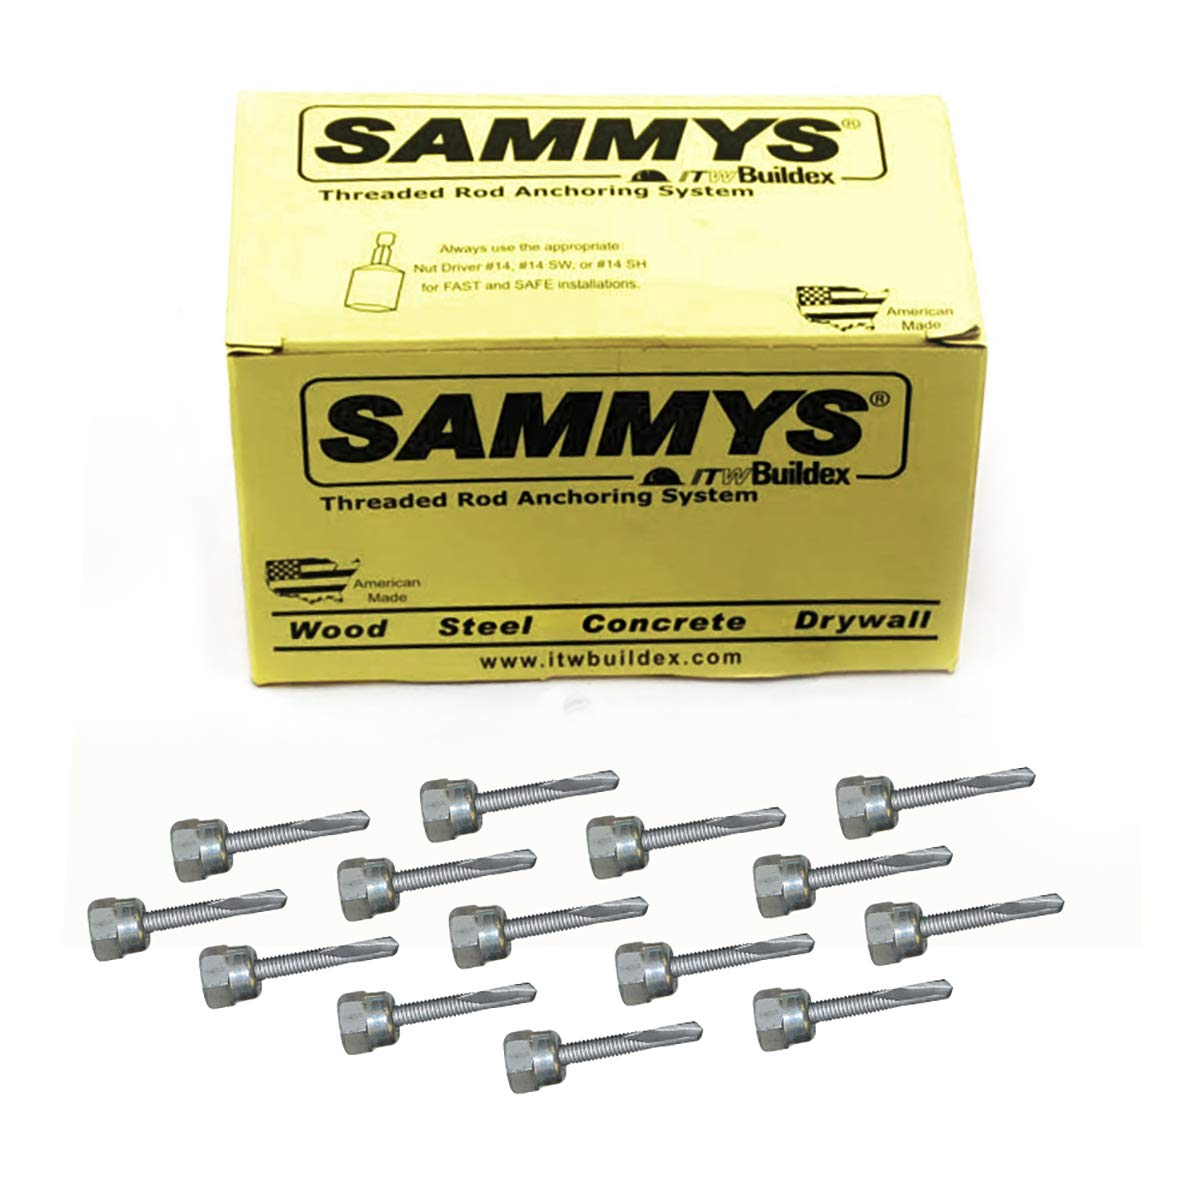 Sammys 8031925-25 Vertical Anchor Super Screw with 1/2 in. Threaded Rod Fitting, 1/4-14 x 2, for for Steel 25 Pack, Piece